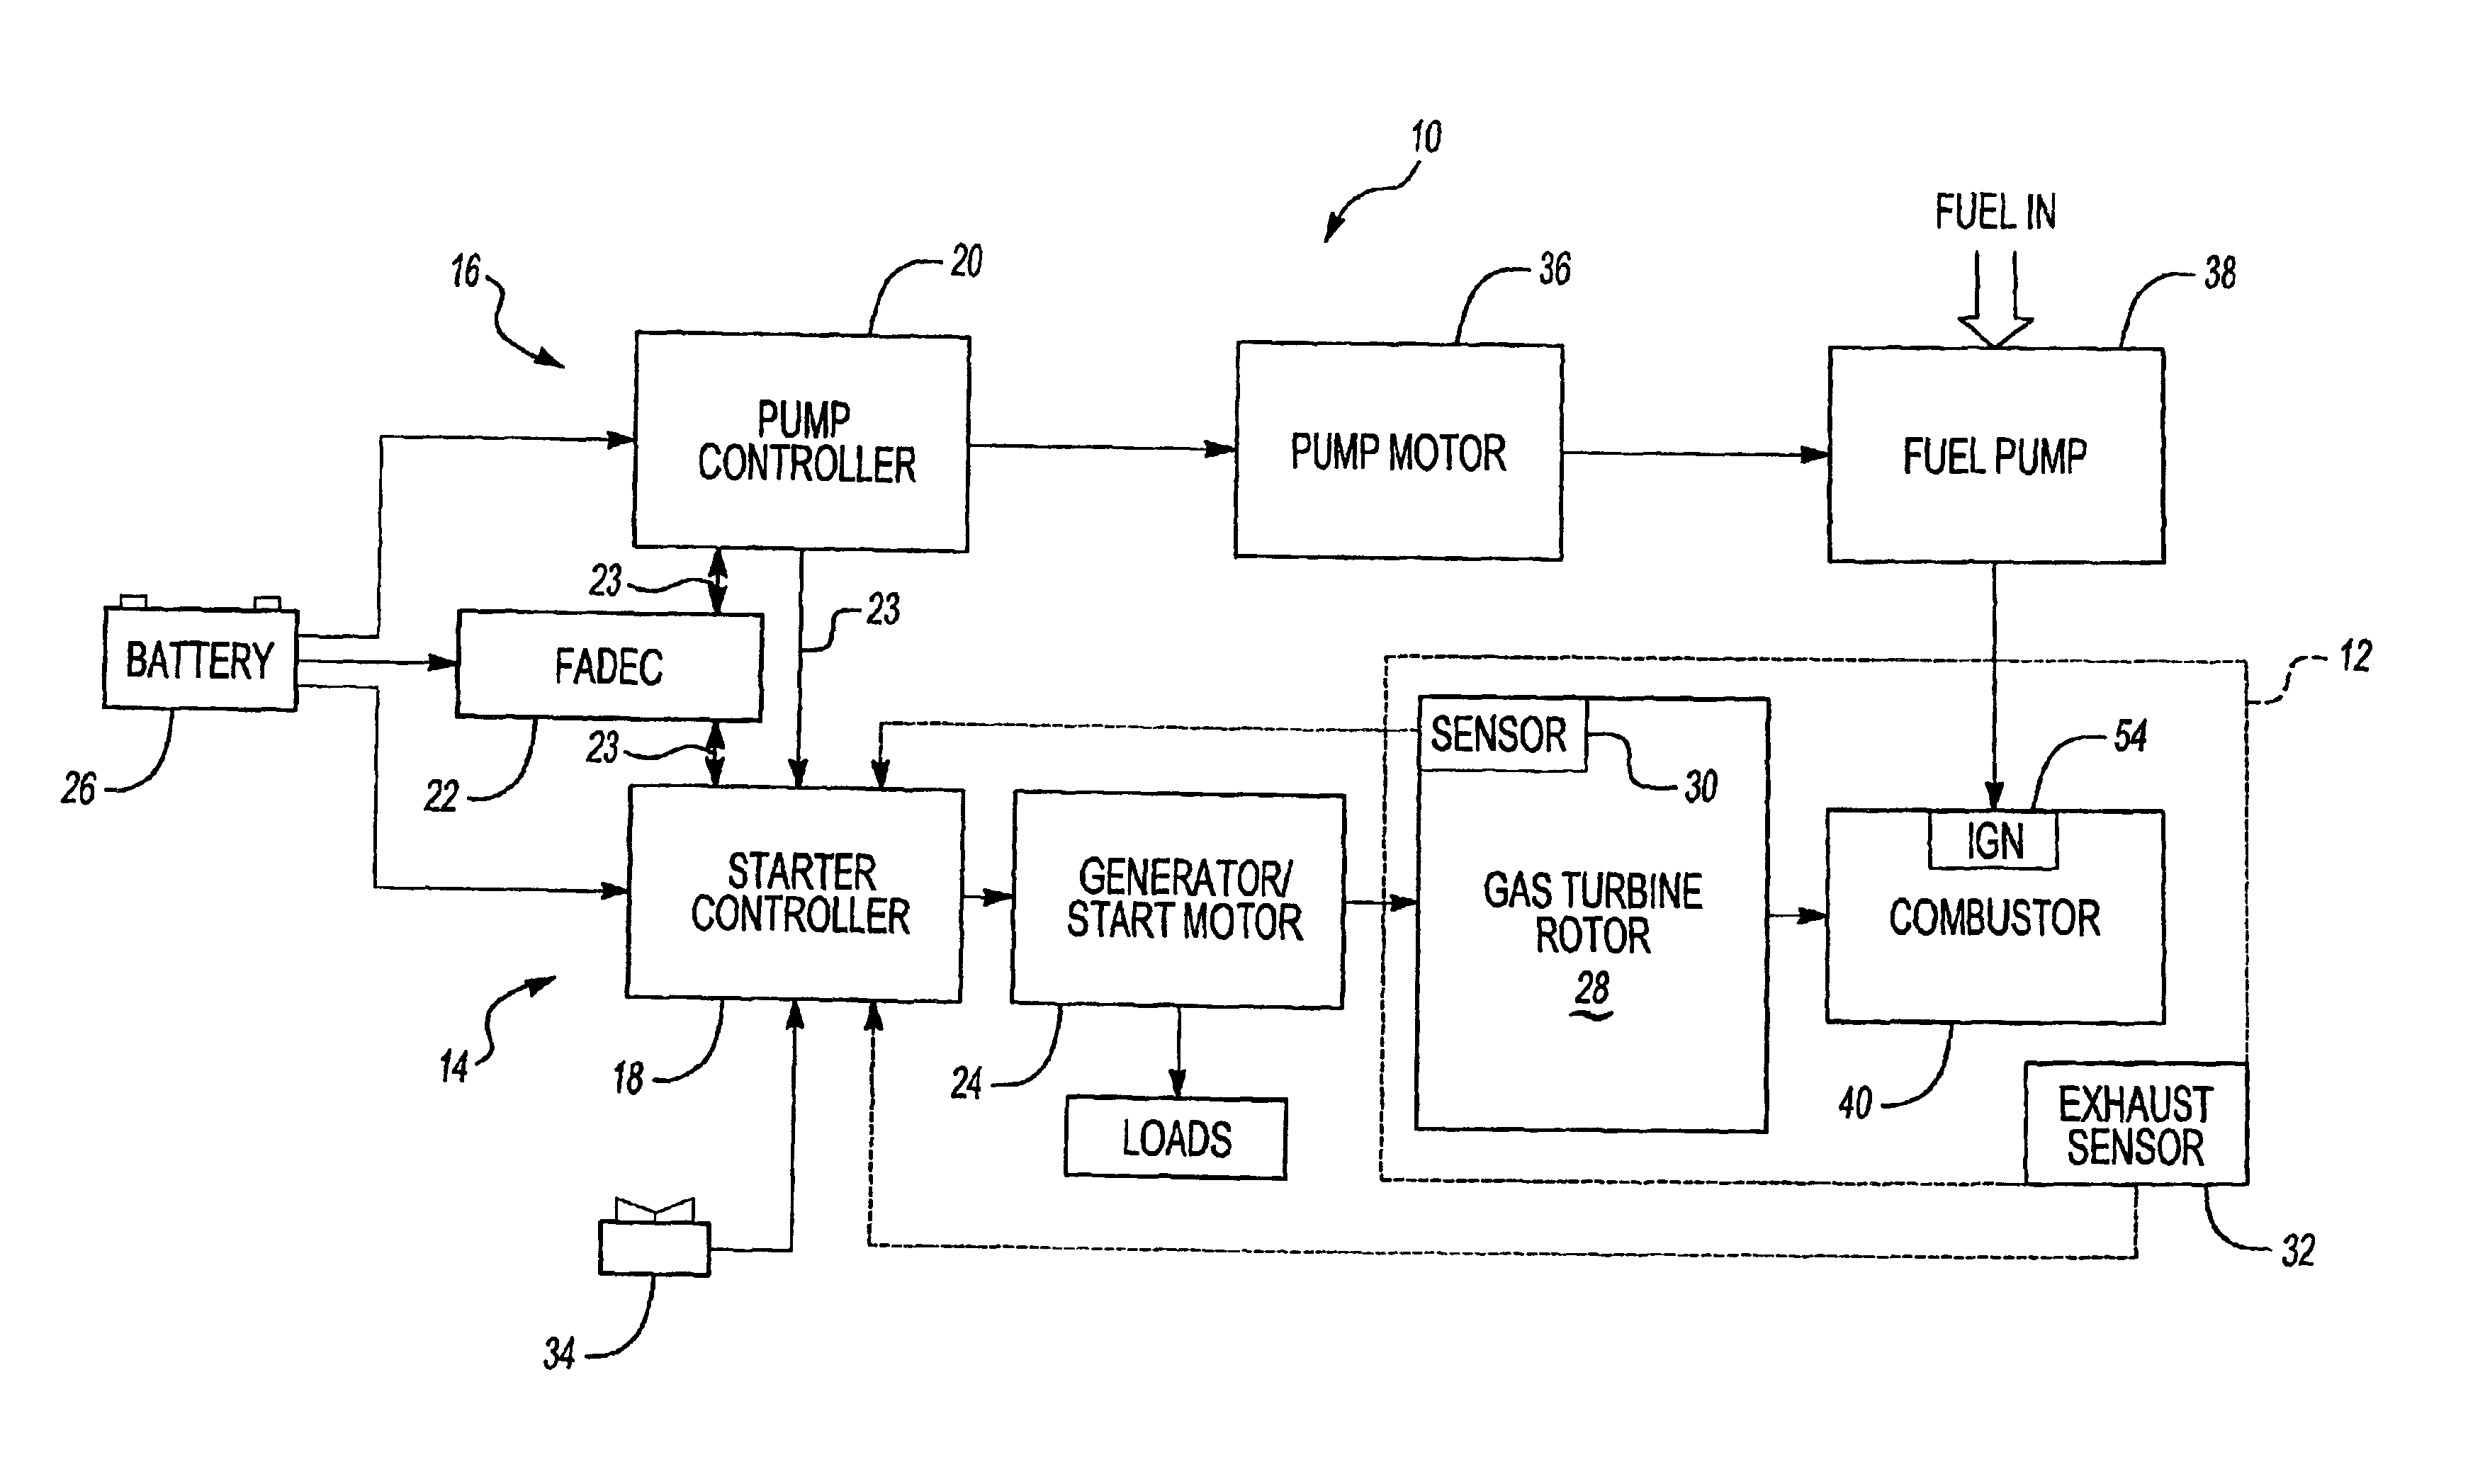 Patent Us6836086 - Controlled Starting System For A Gas Turbine Engine